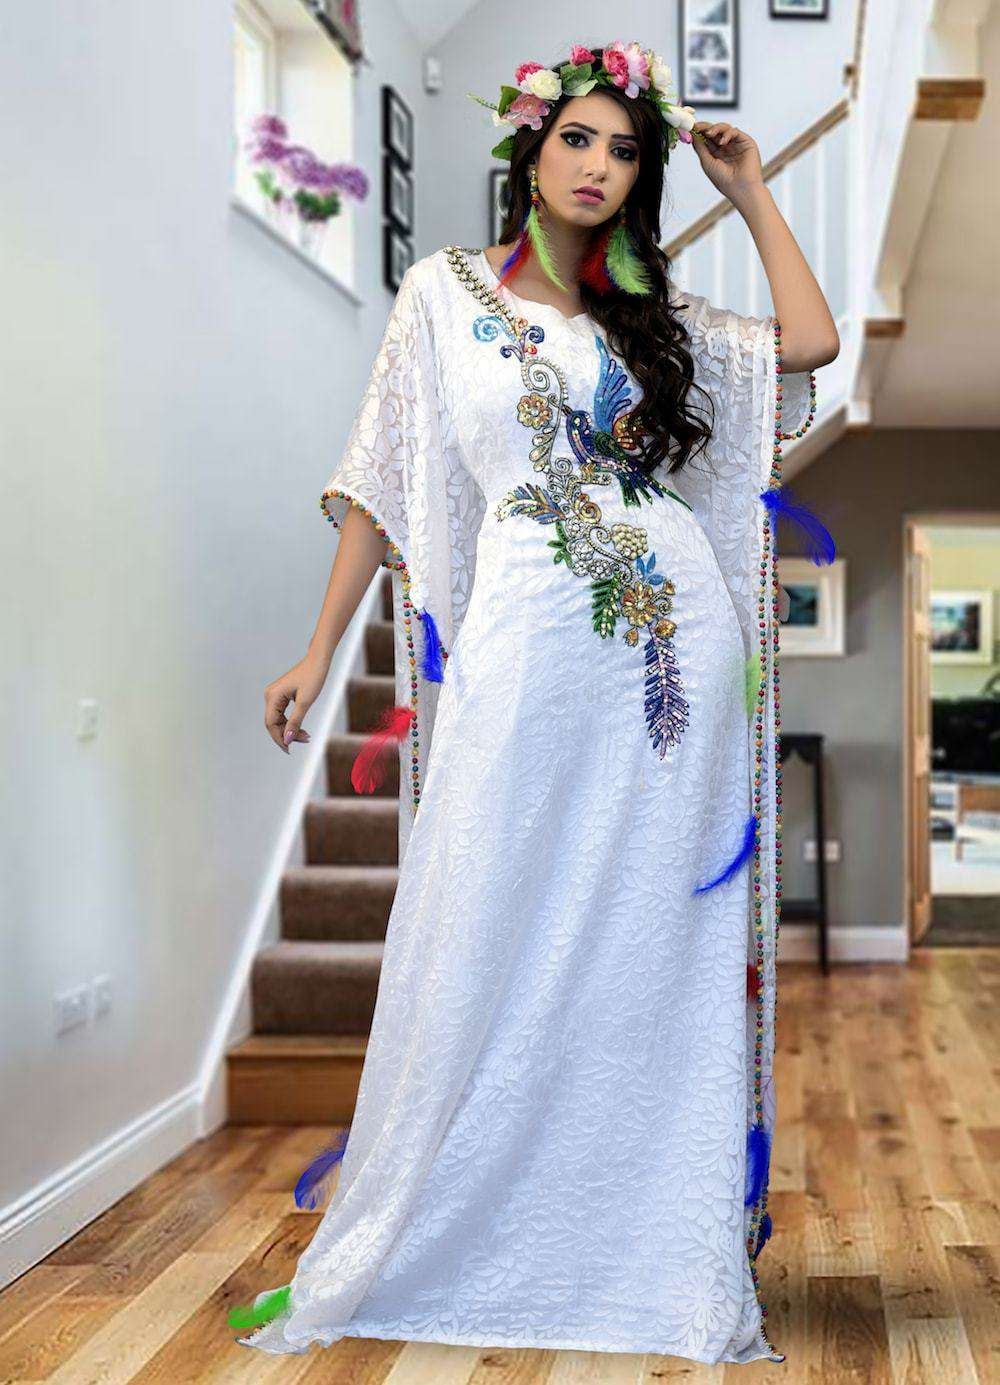 White Classic Evening Kaftan With Gold Sequins Handwork Farasha MYPF1345